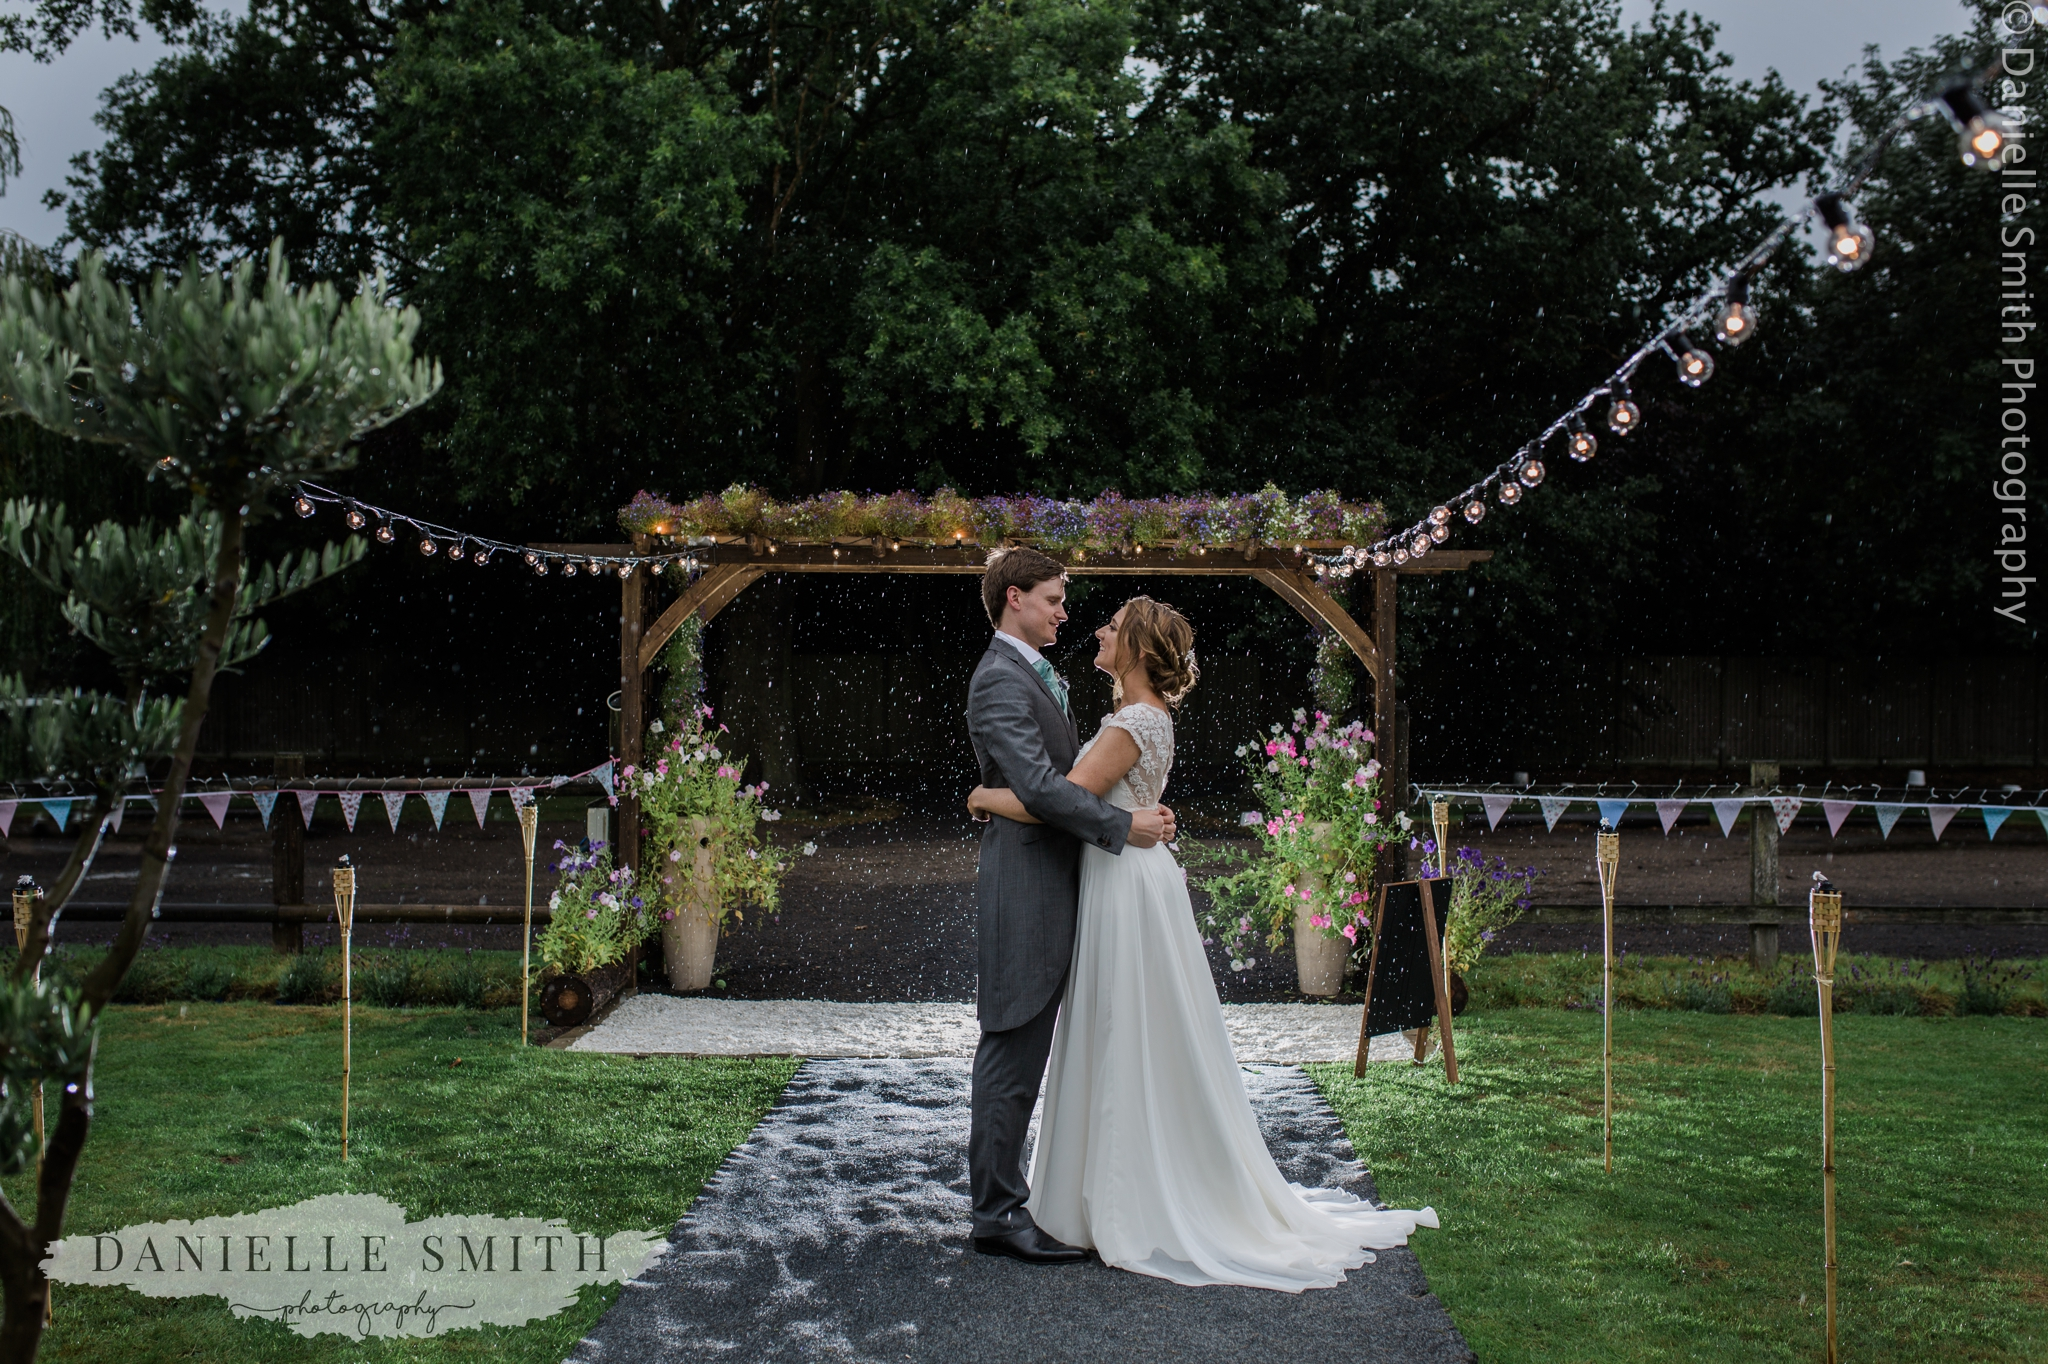 bride and groom standing in rain - relaxed marquee wedding